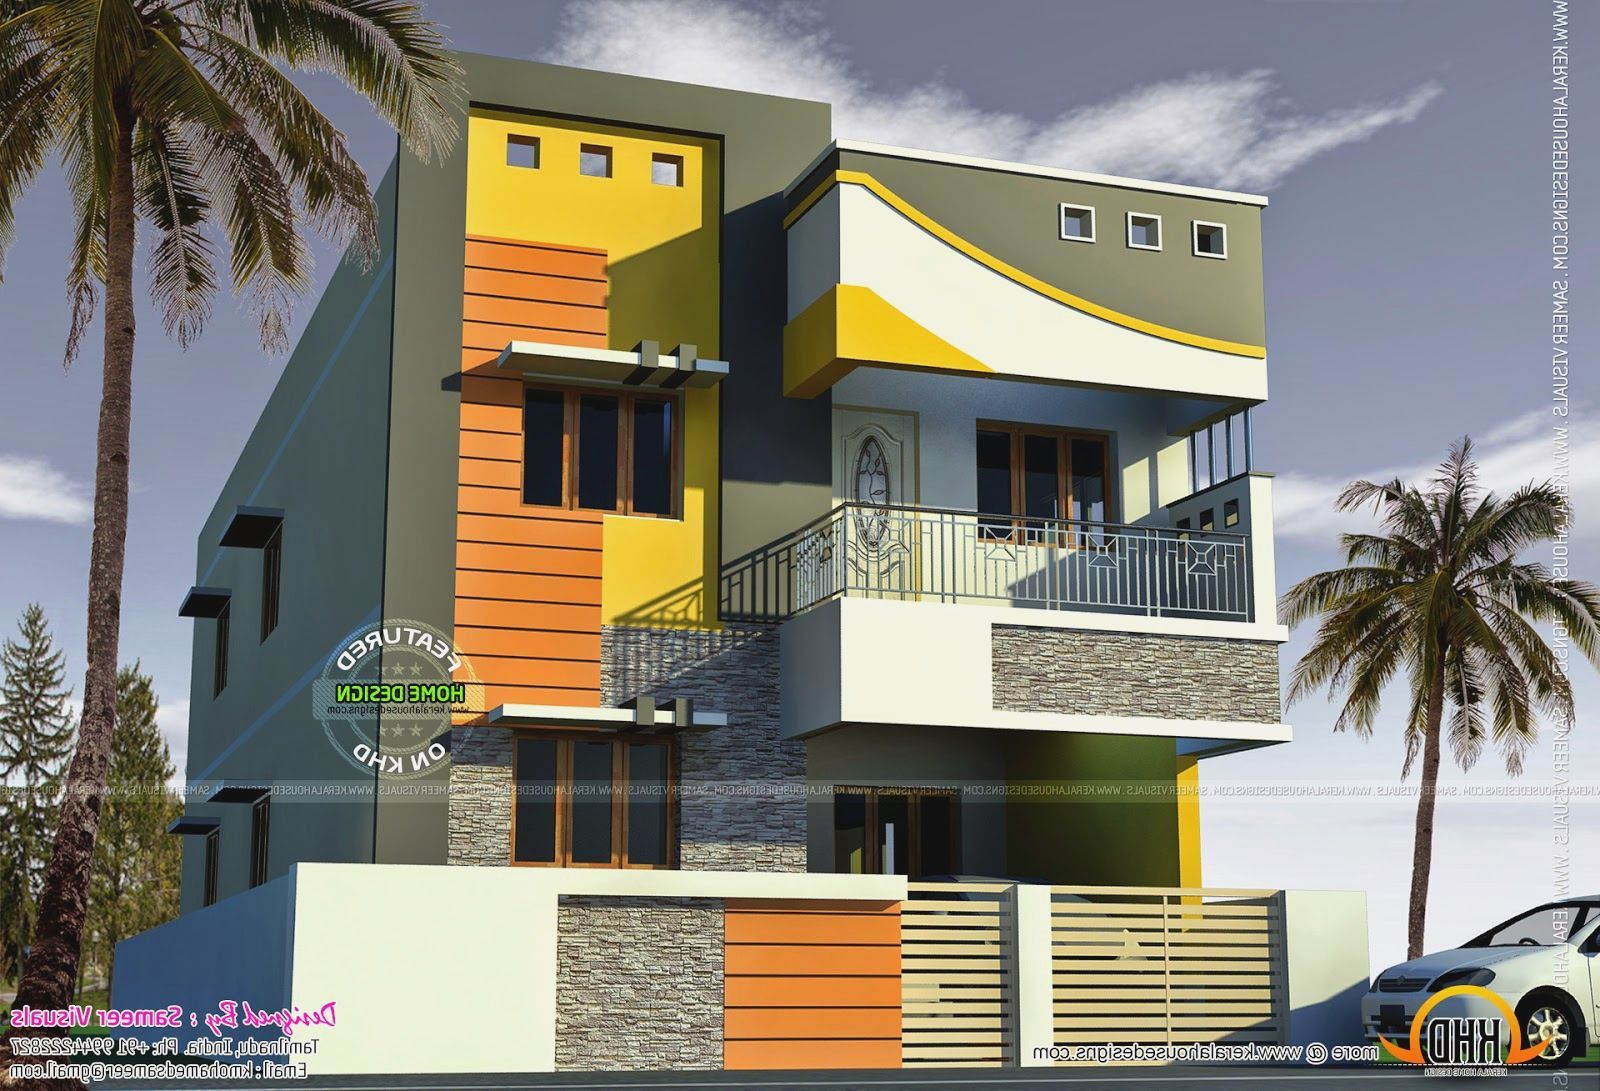 Tamilnadu house models more picture tamilnadu house models for Modern kitchen design tamilnadu